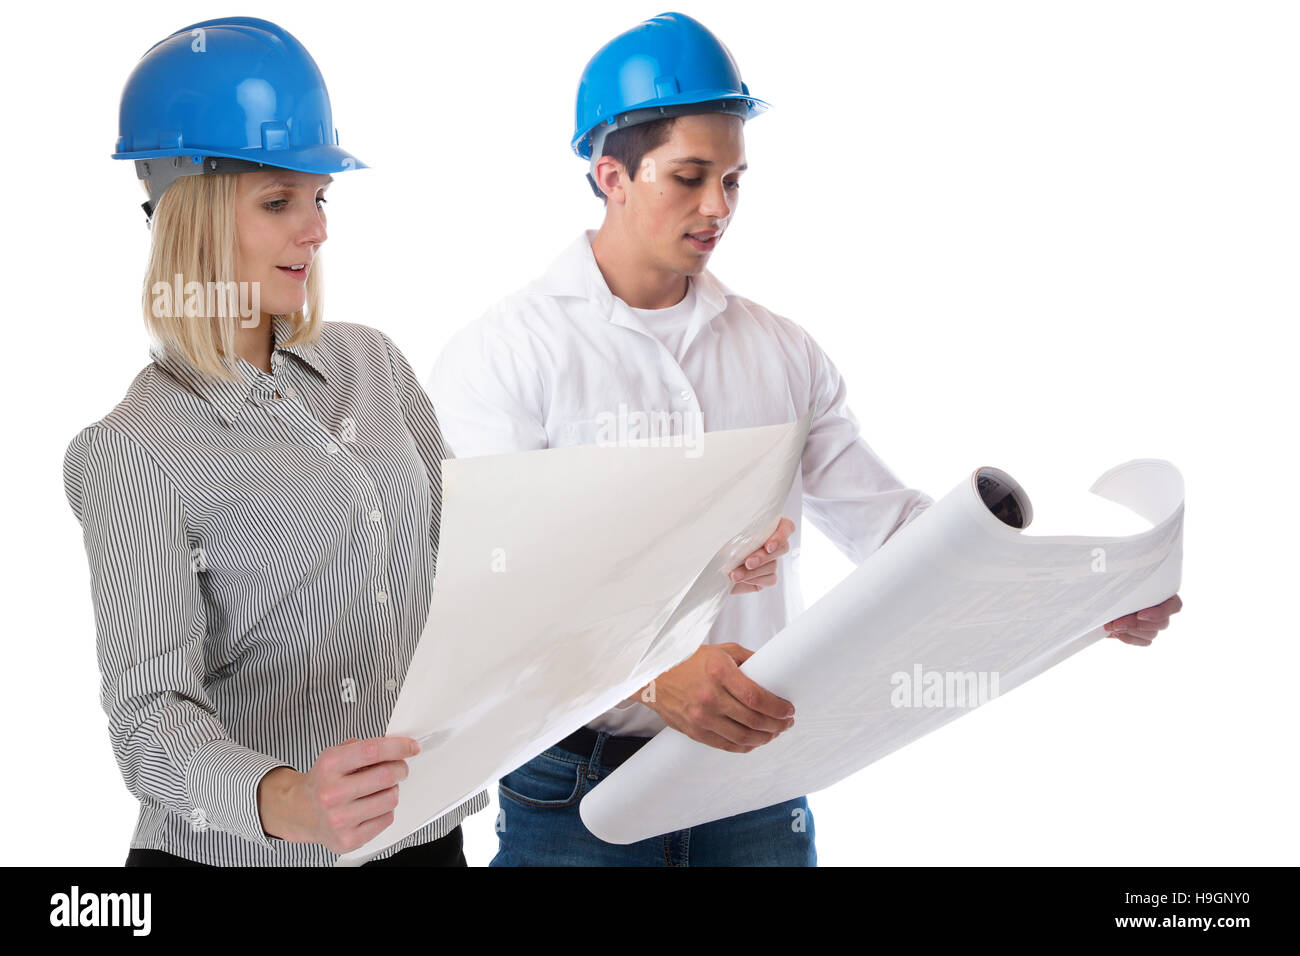 Architects architect reading plan occupation job isolated on a white background - Stock Image